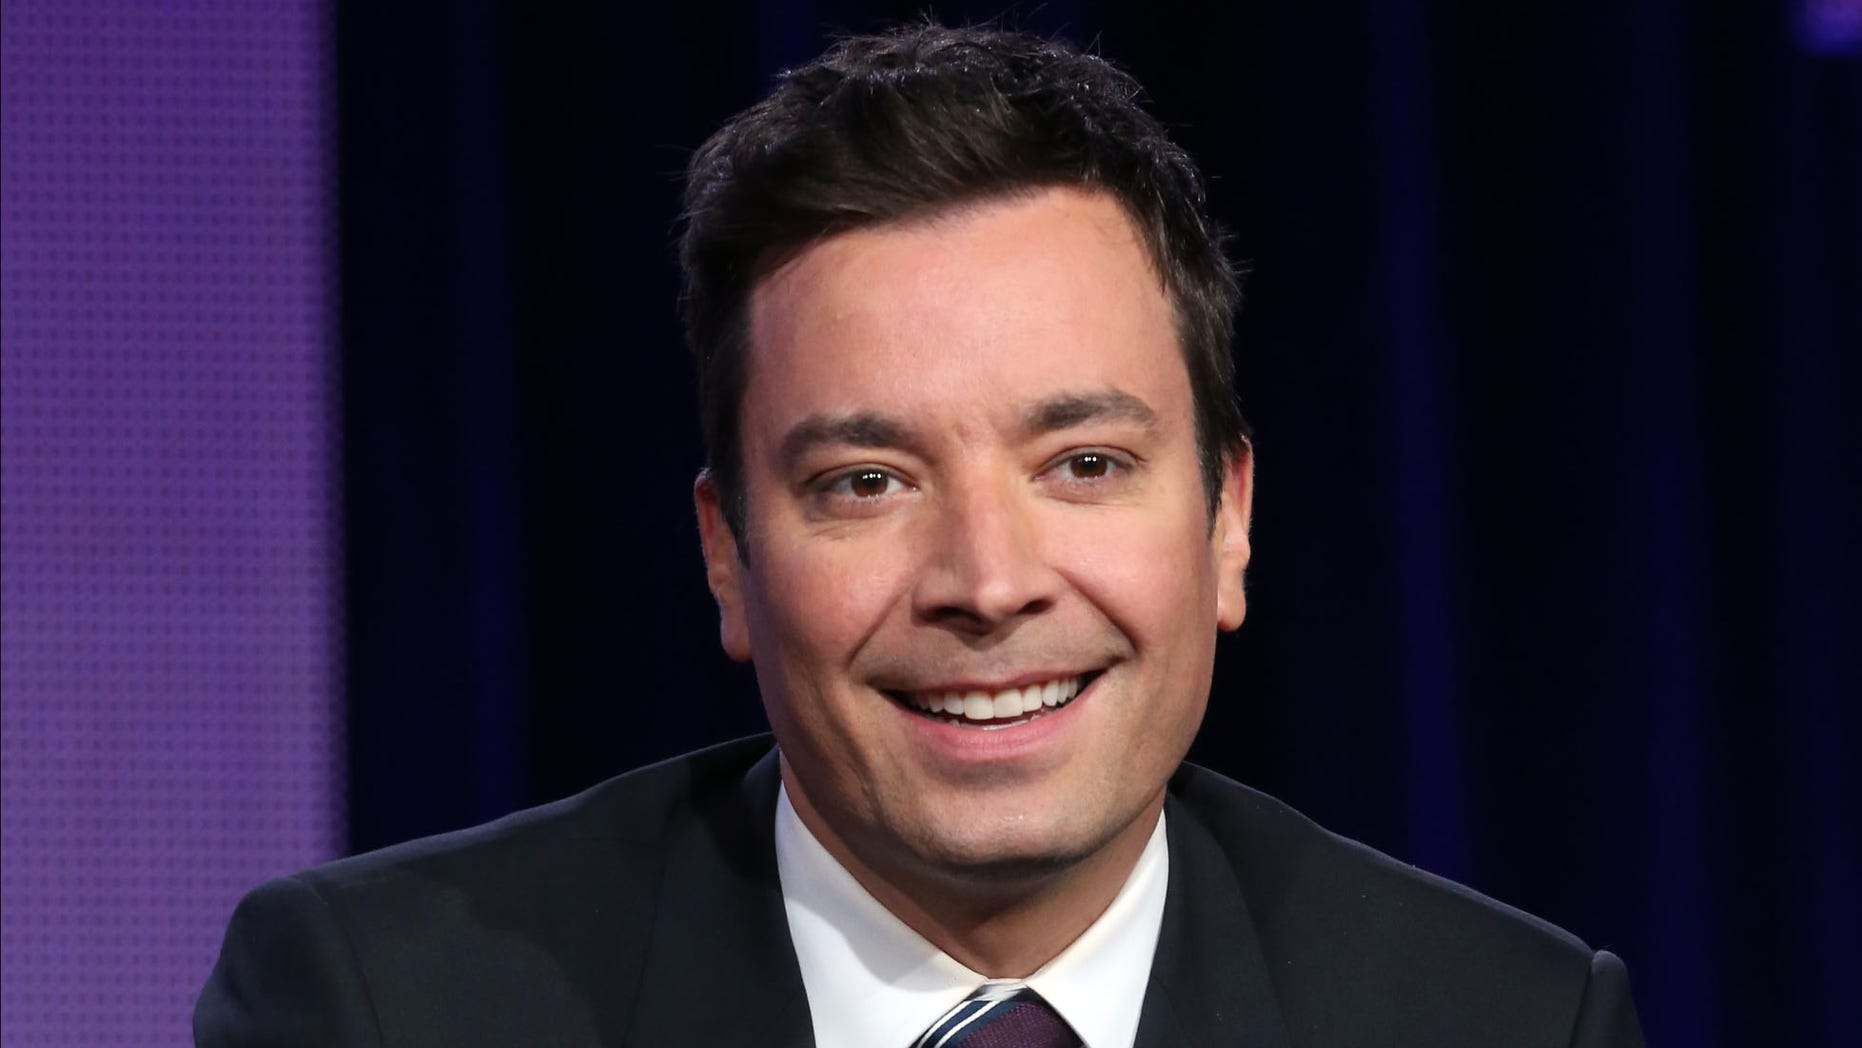 """Photo released by NBC shows Jimmy Fallon who will be the new host of """"Tonight Show Starring Jimmy Fallon."""" Fallon's final """"Late Night"""" show was on Feb. 7, 2014."""